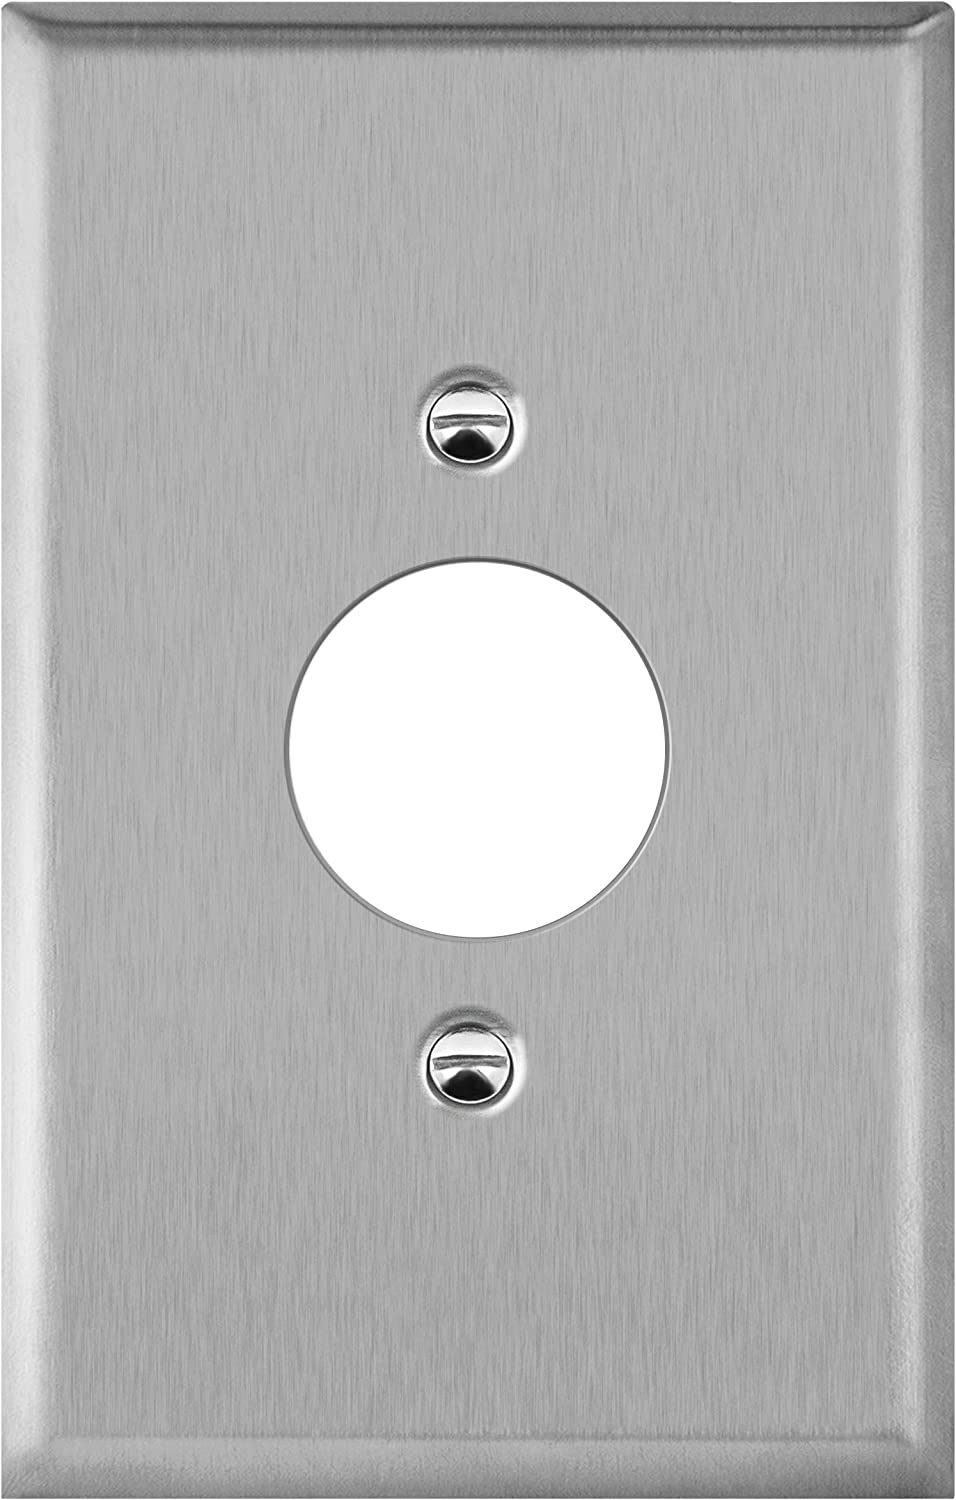 "ENERLITES 1.406"" Hole Single Receptacle Outlet Metal Wall Plate, Corrosive Resistant, Over Size 1-Gang 5.5"" x 3.5"", 7751O, 430 Stainless Steel, UL Listed, Silver"